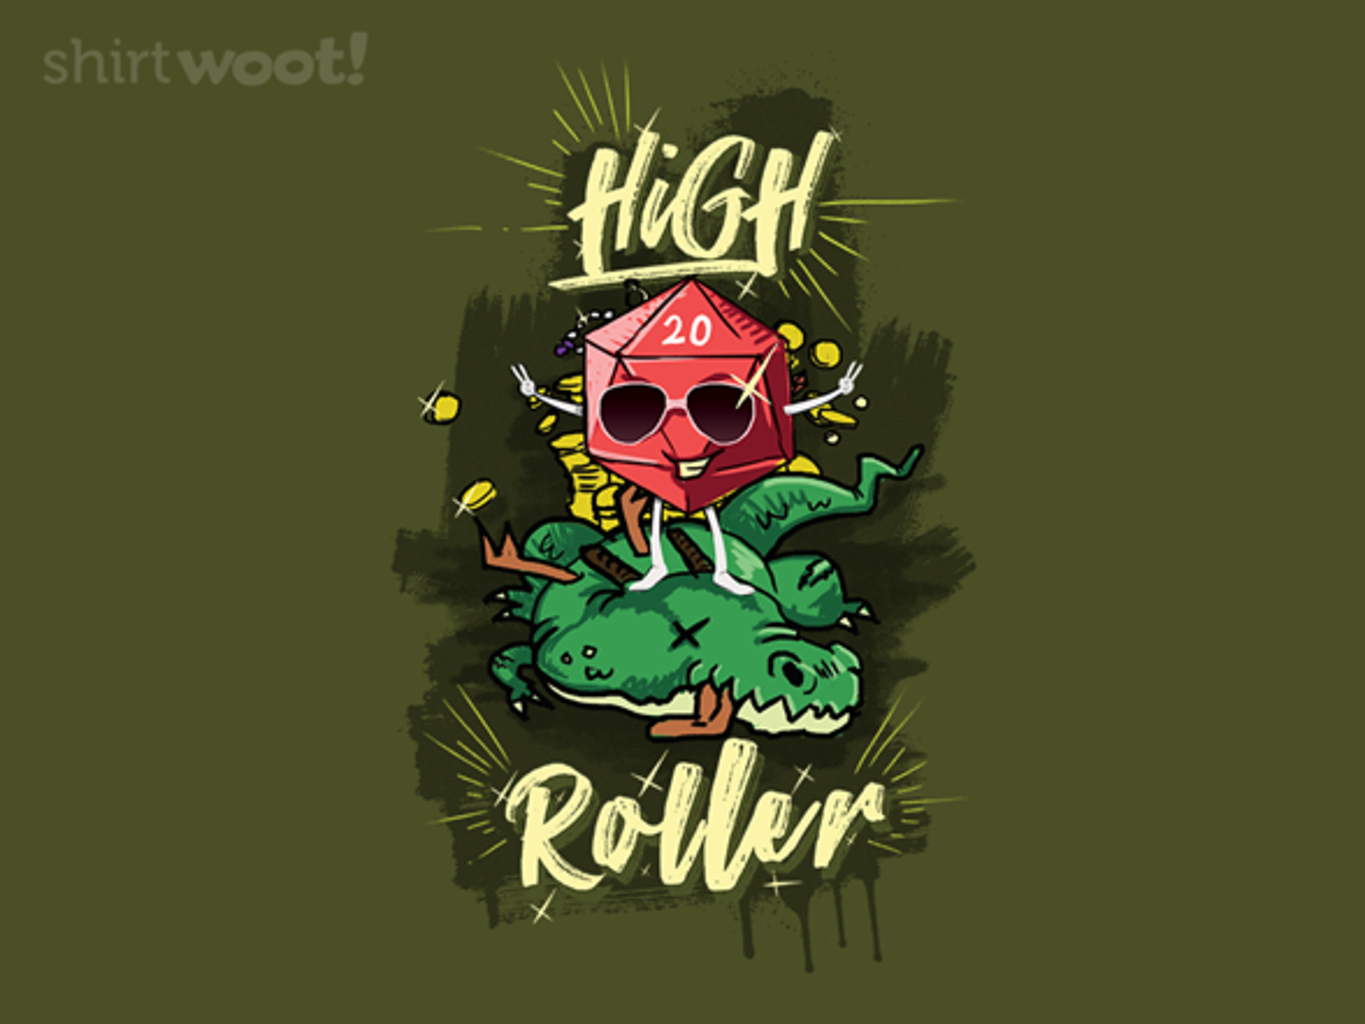 Woot!: High Roller Crew - $15.00 + Free shipping